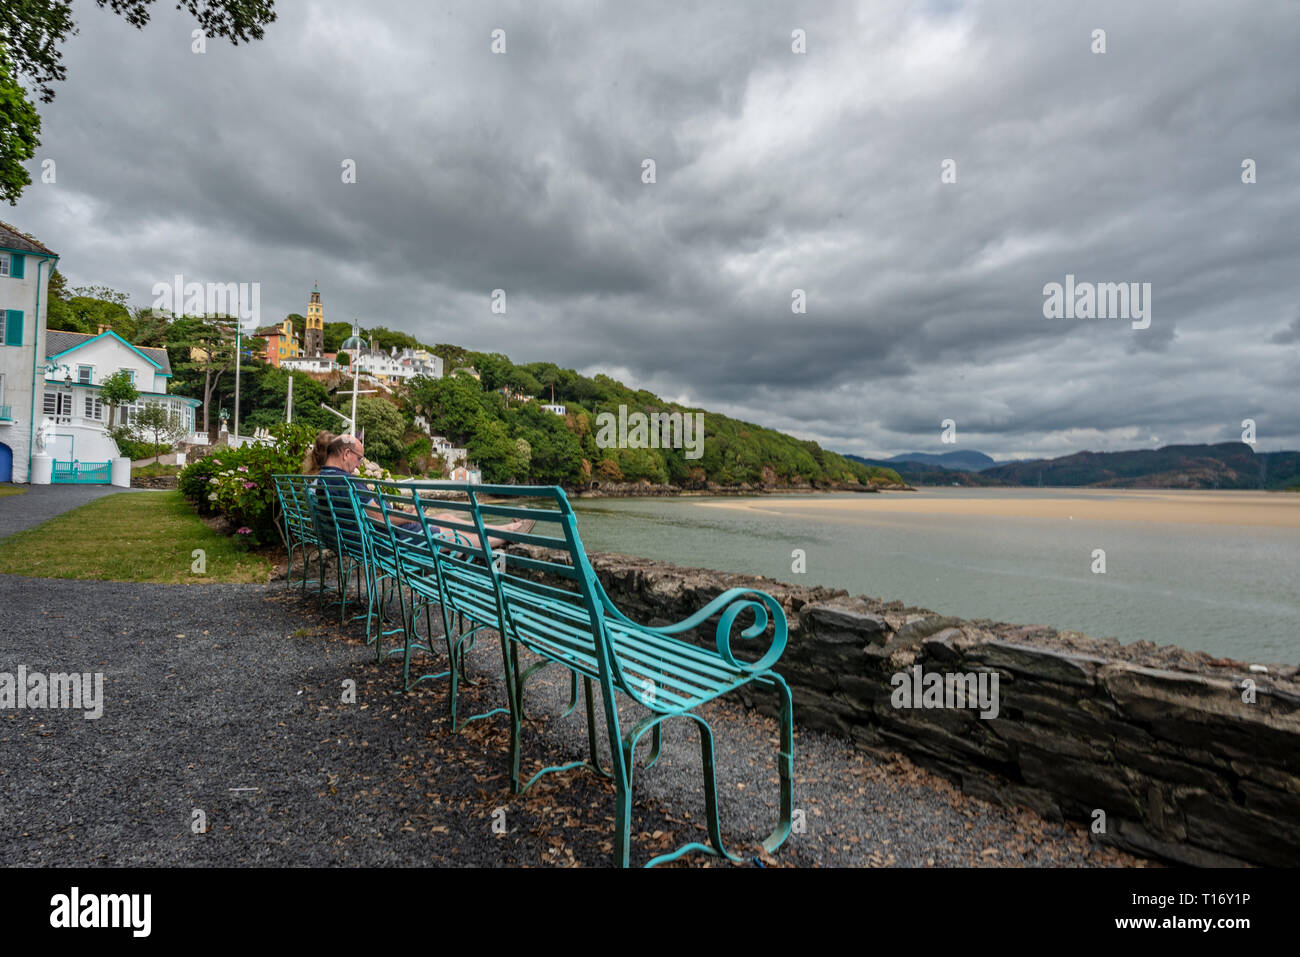 Couple relaxing on a long turquoise iron bench by the seashore, Portmeirion, Gwynedd, North Wales, United Kingdom - Stock Image